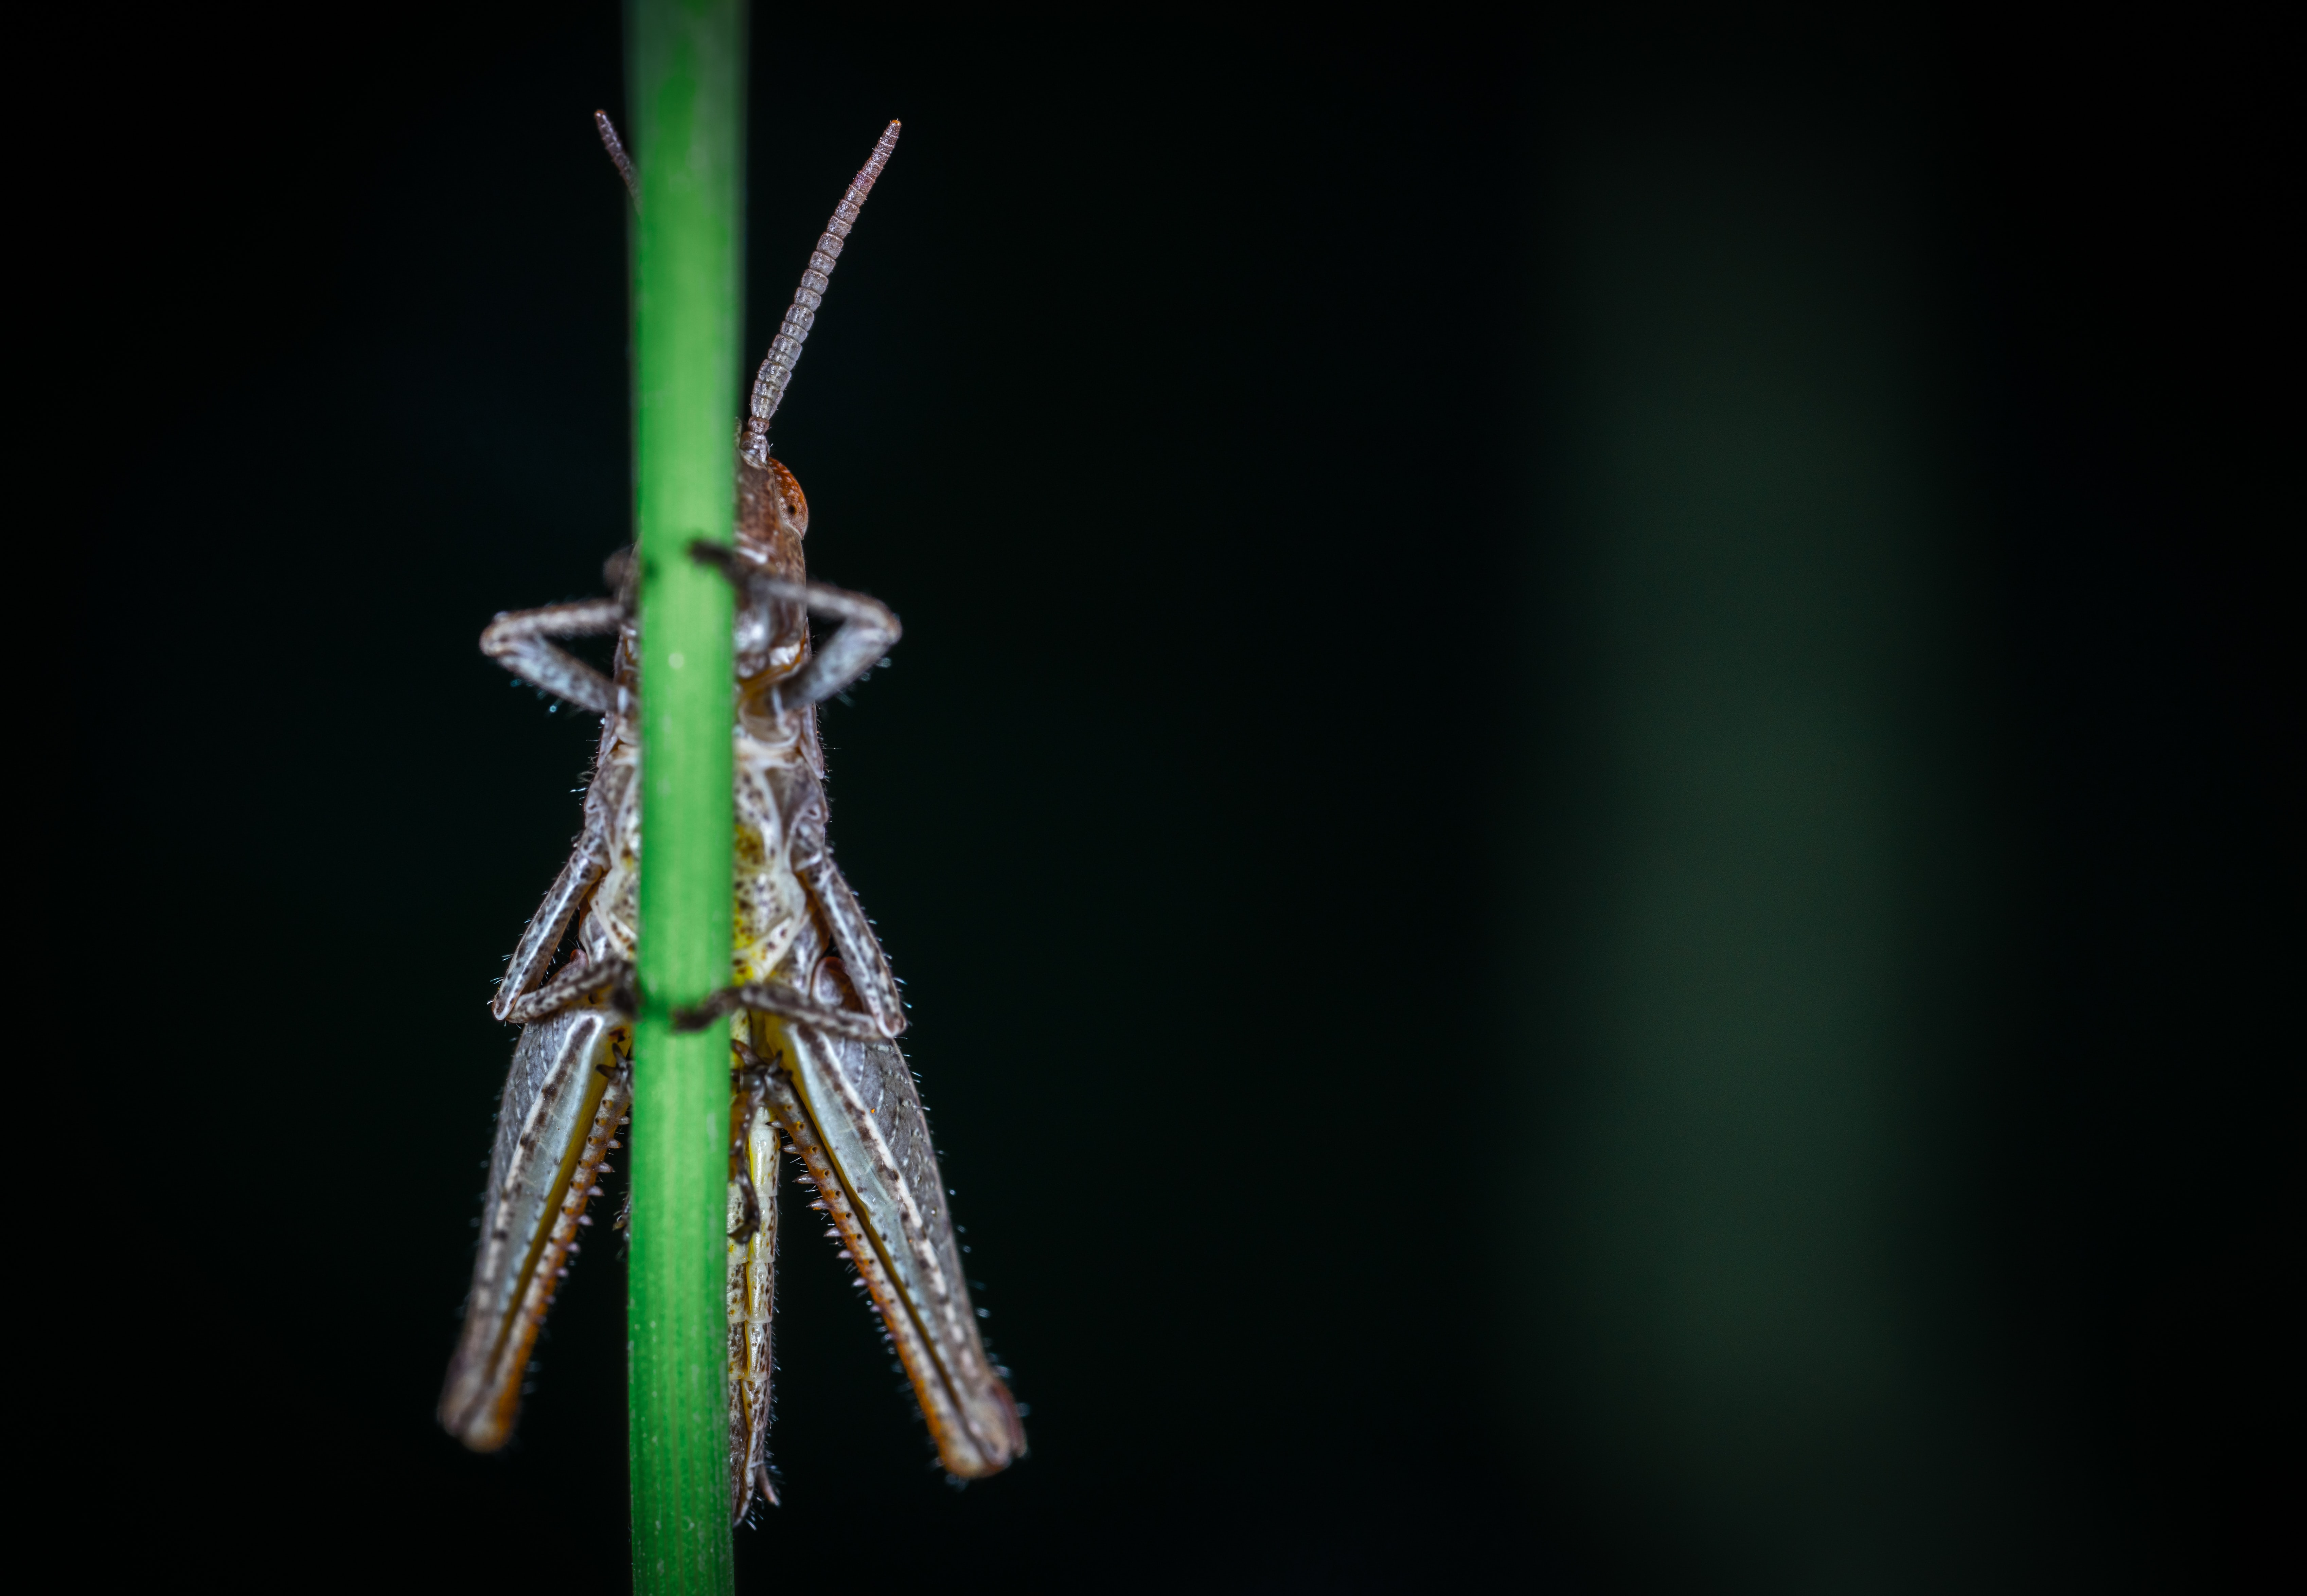 macro photography of gray insect on green plant